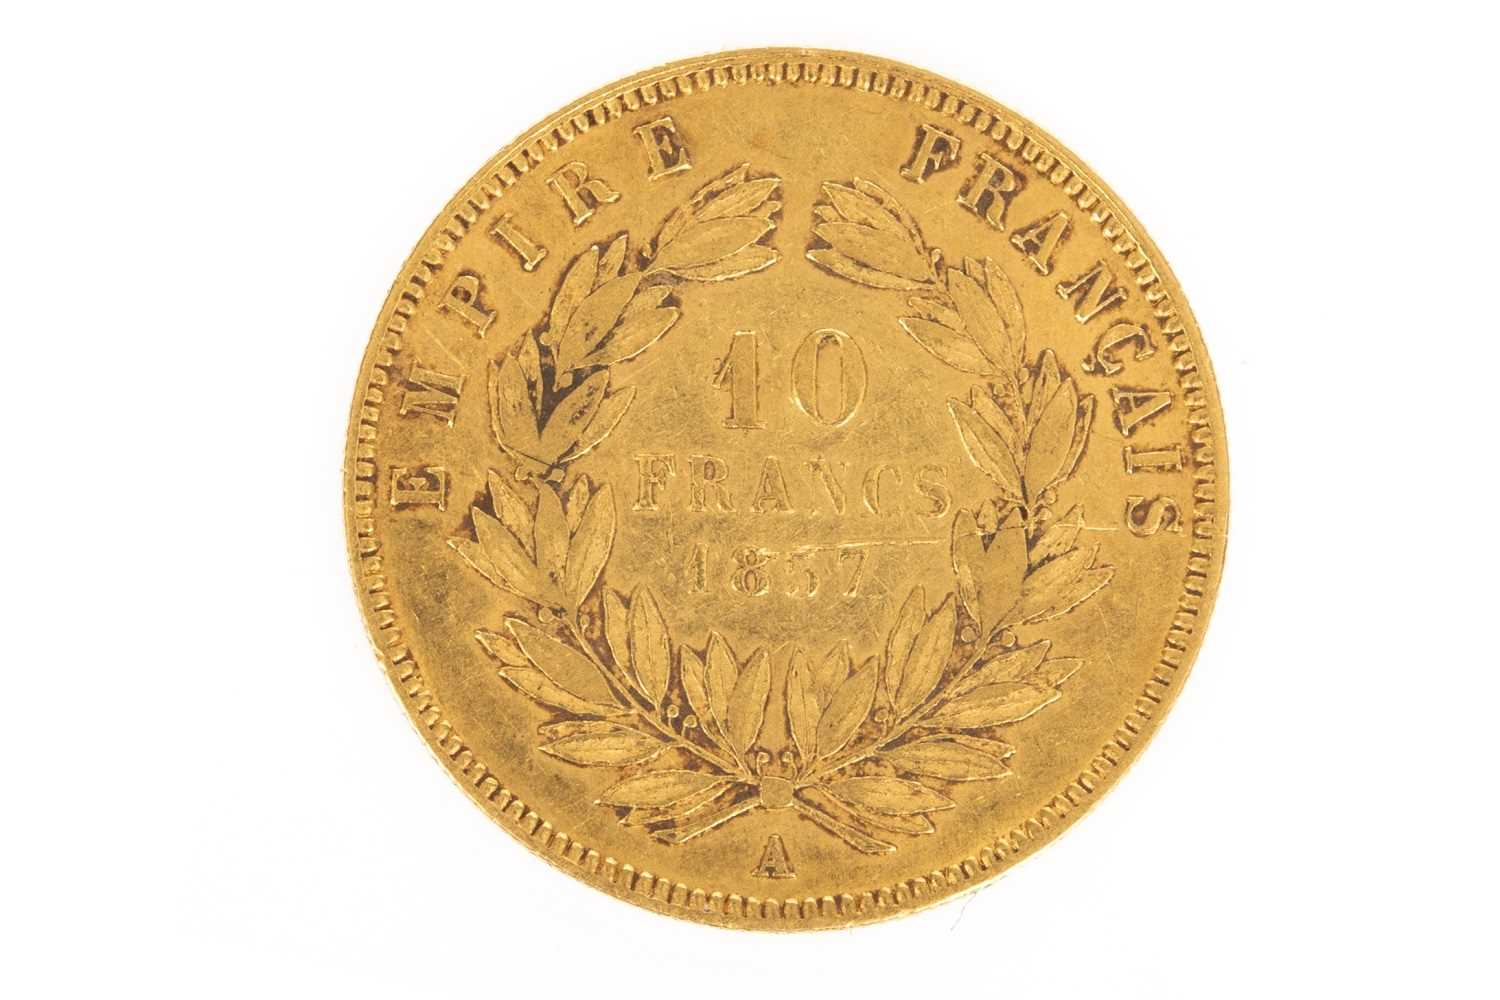 Lot 609-A GOLD FRENCH 10 FRANCS COIN, 1857